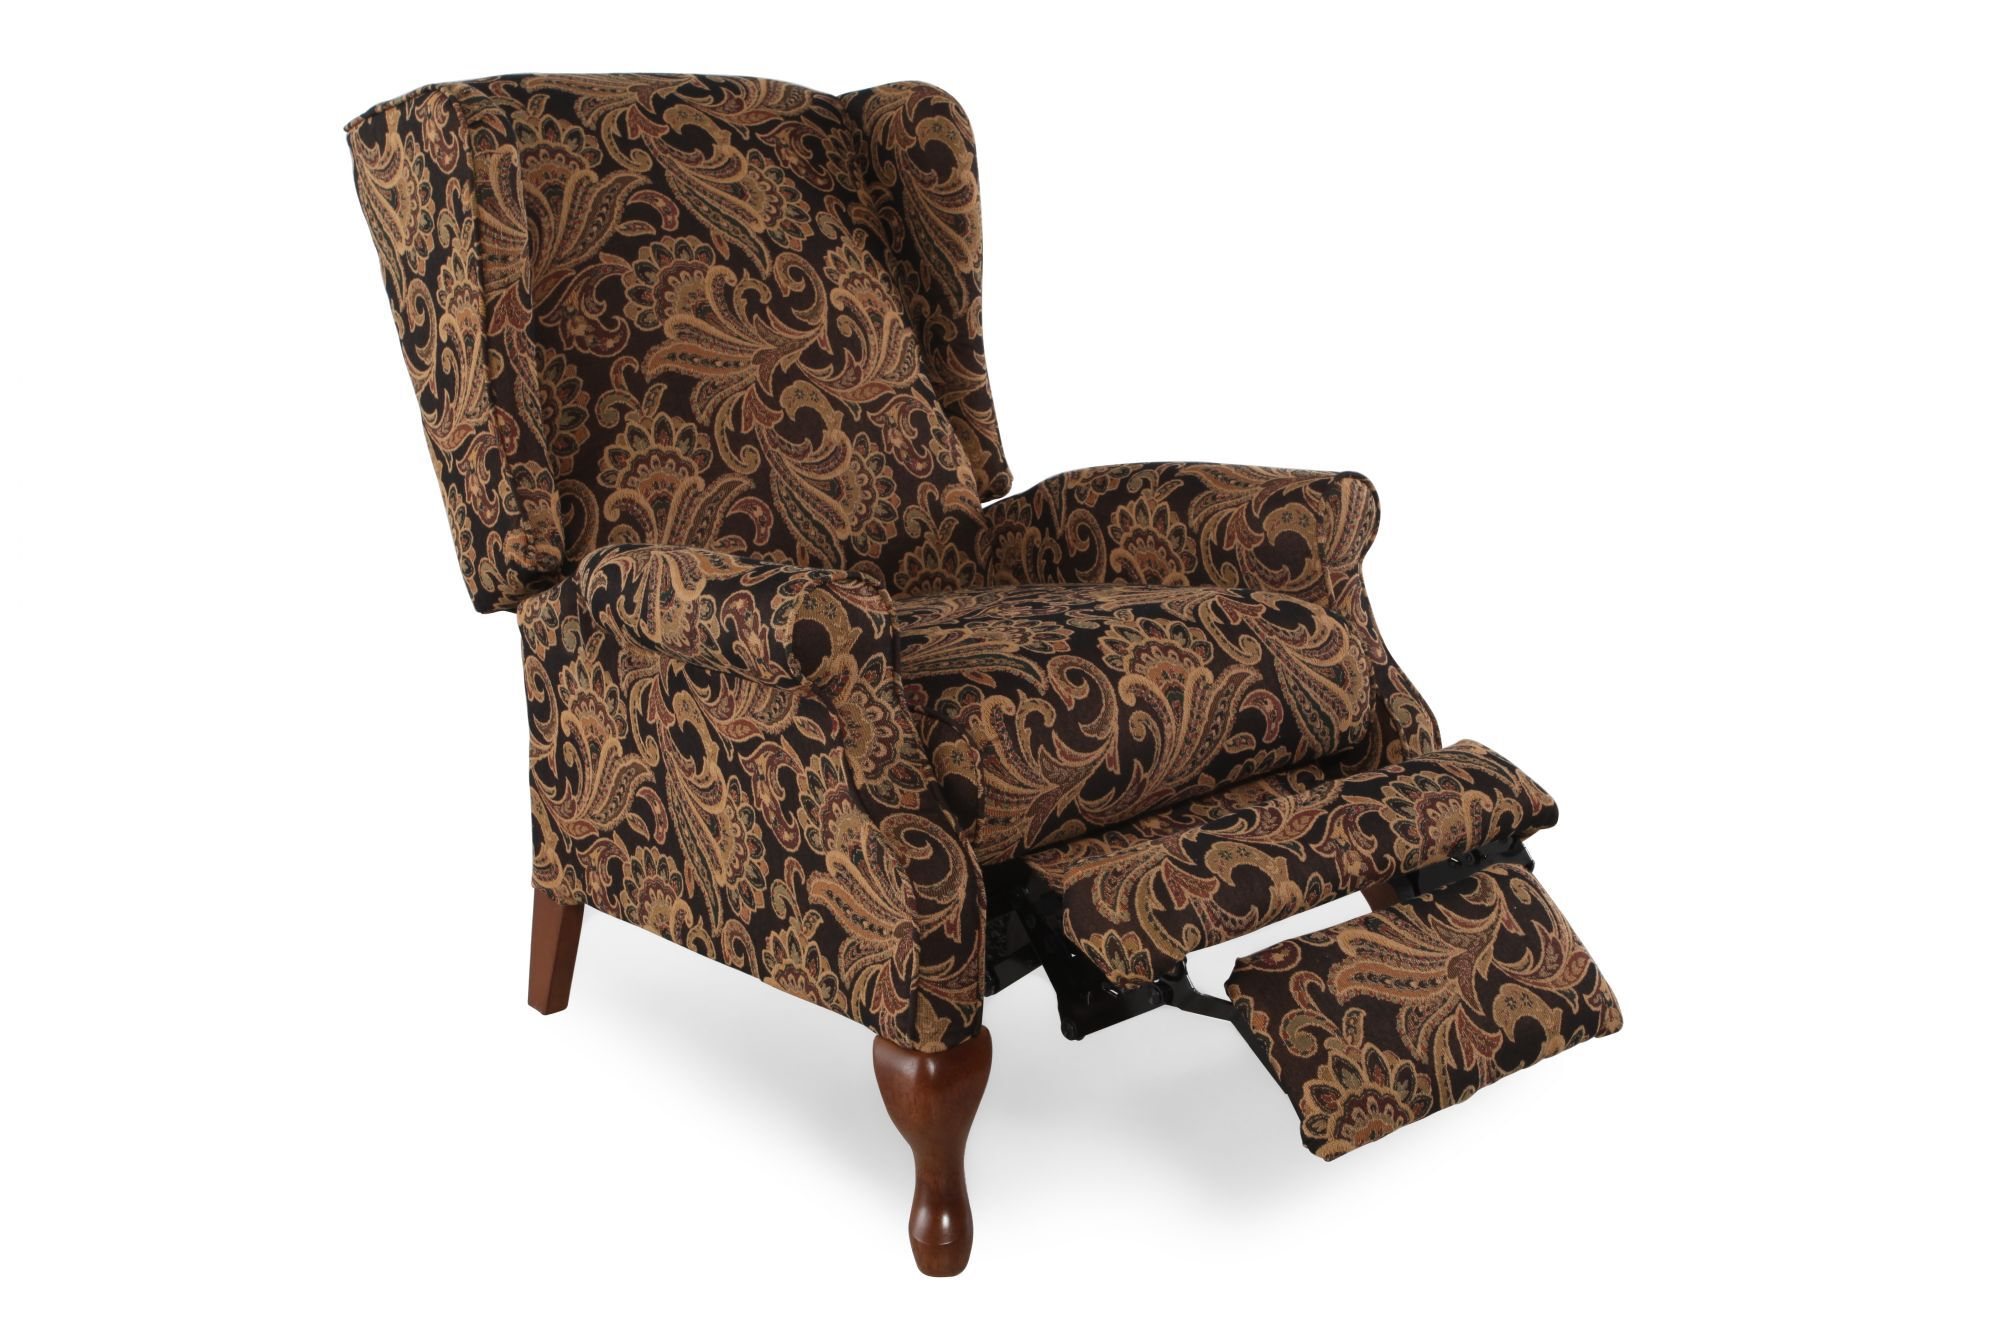 La-Z-Boy Kimberly Autumn Recliner  sc 1 st  Mathis Brothers & La-Z-Boy Kimberly Autumn Recliner | Mathis Brothers Furniture islam-shia.org